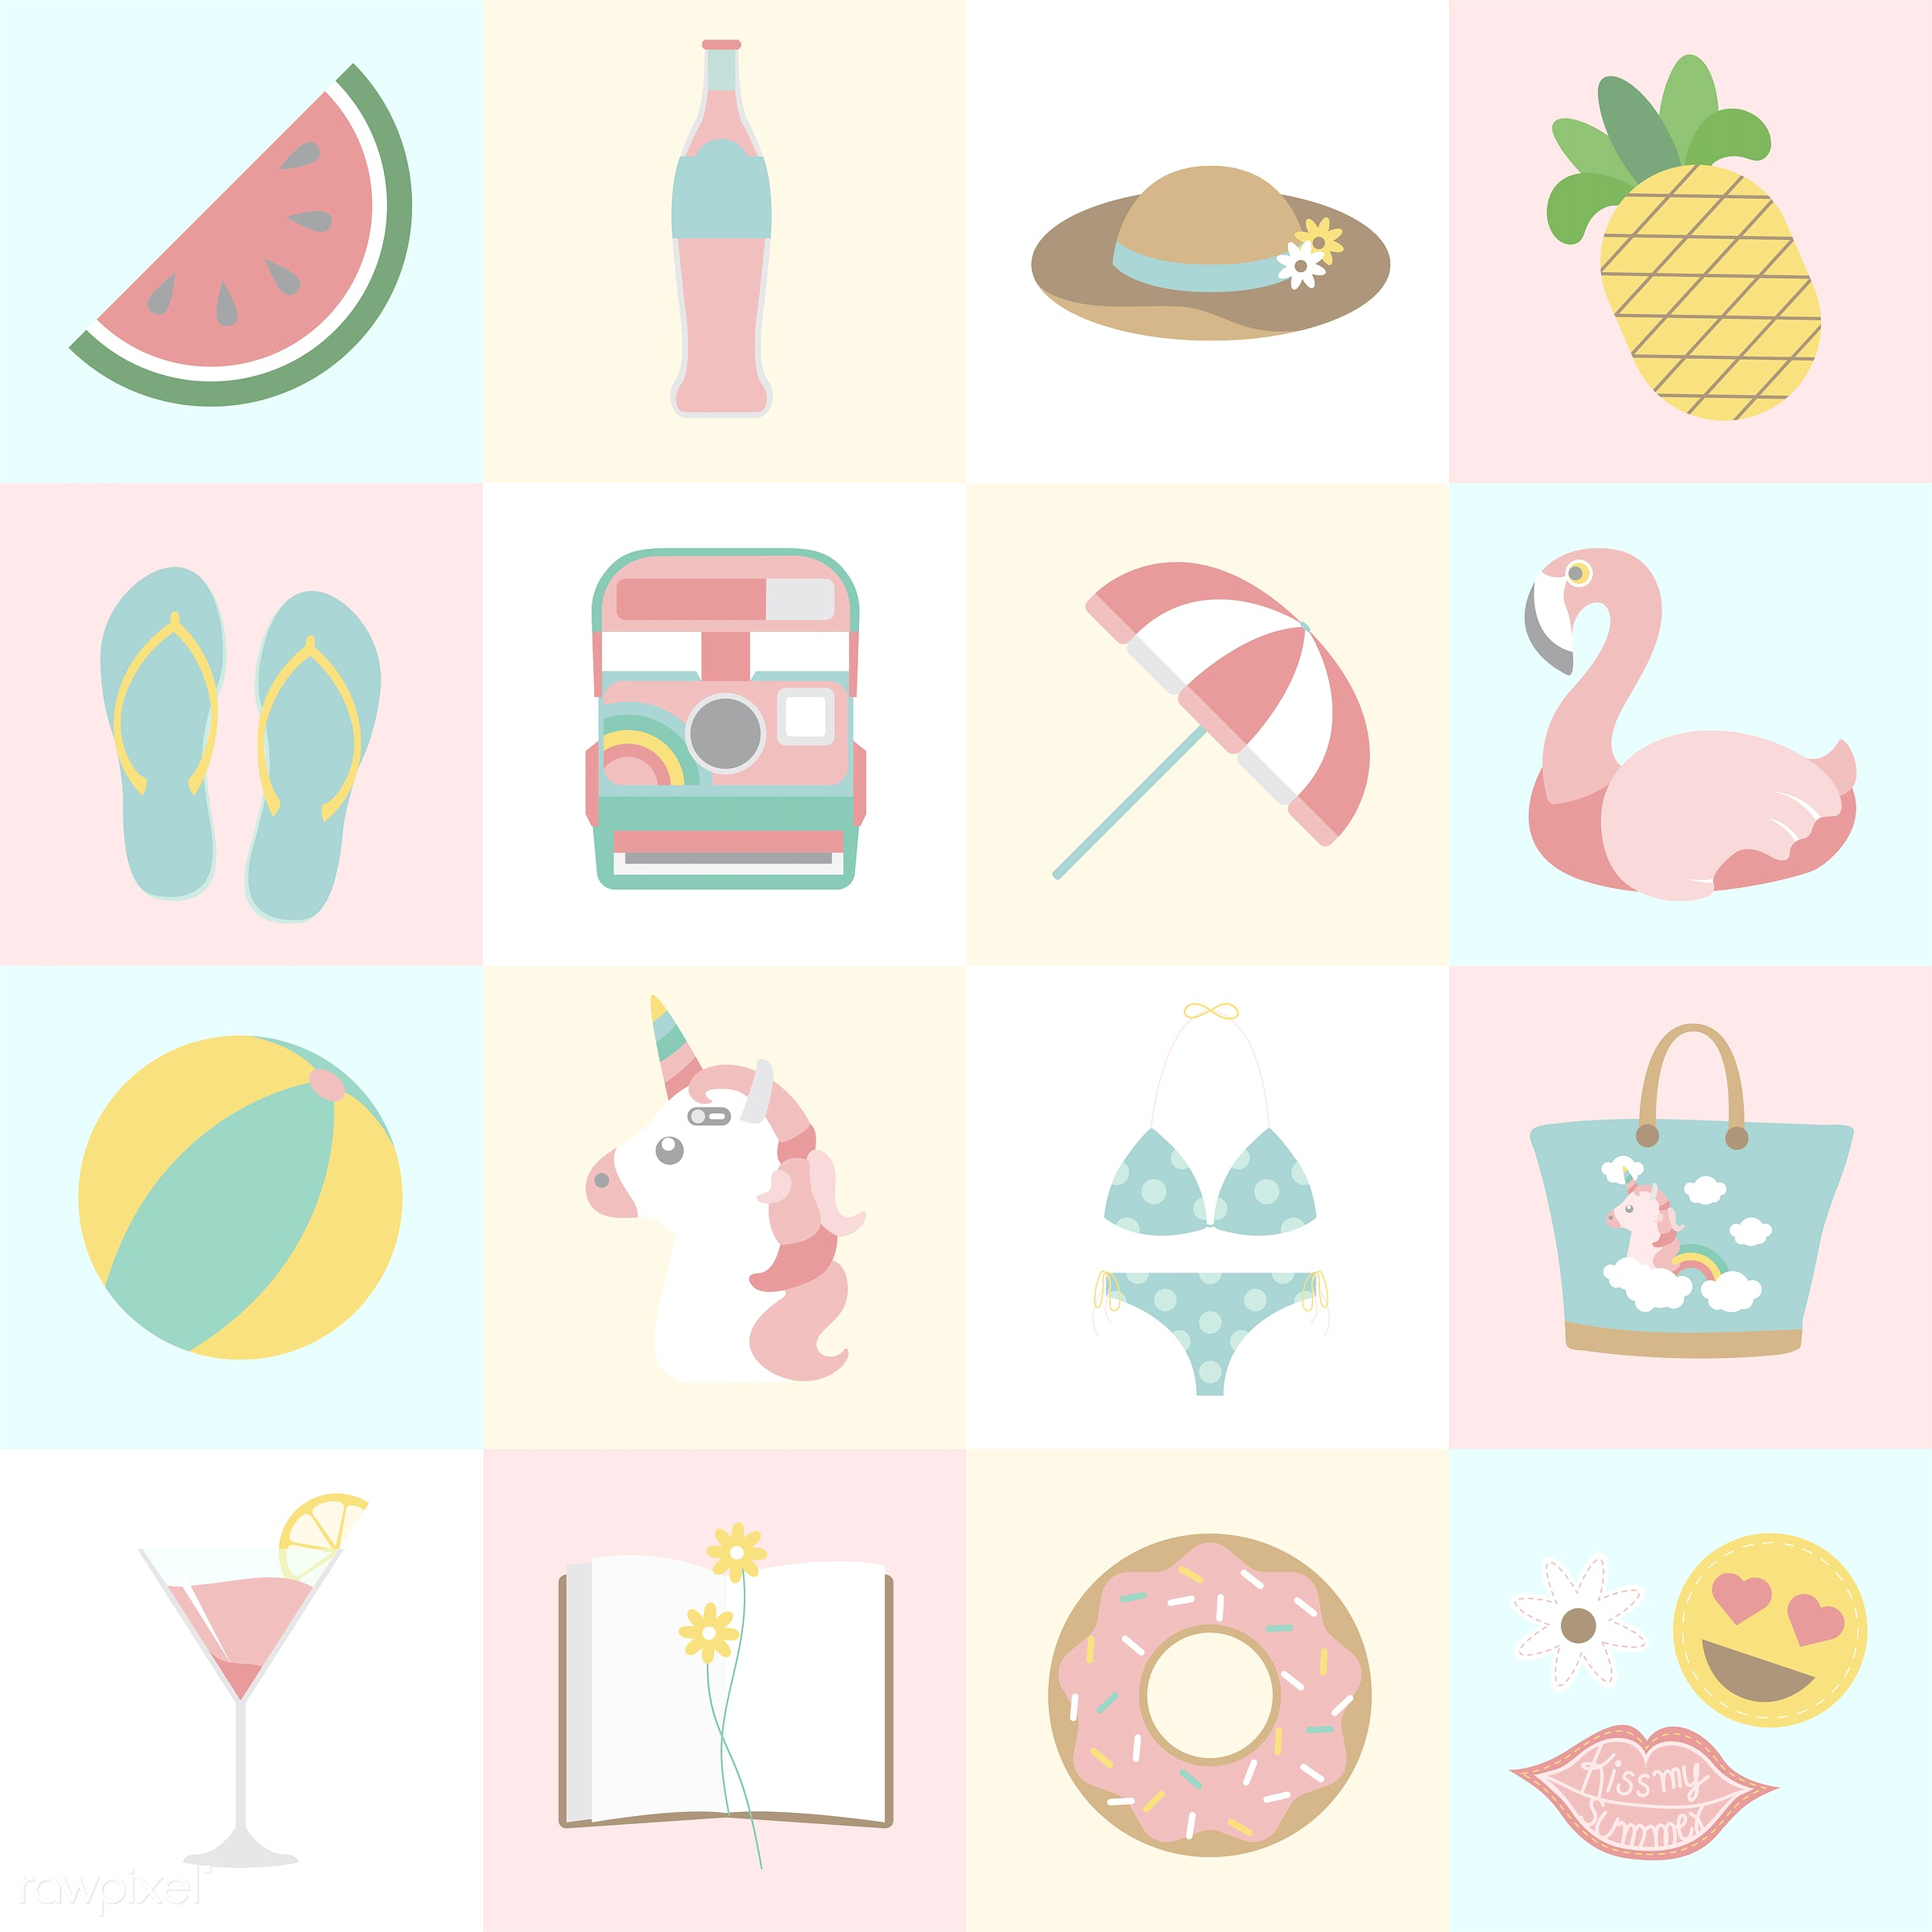 vector, illustration, graphic, cute, sweet, girly, pastel, camera, analog, diary, notebook, notes, umbrella, parasol,...